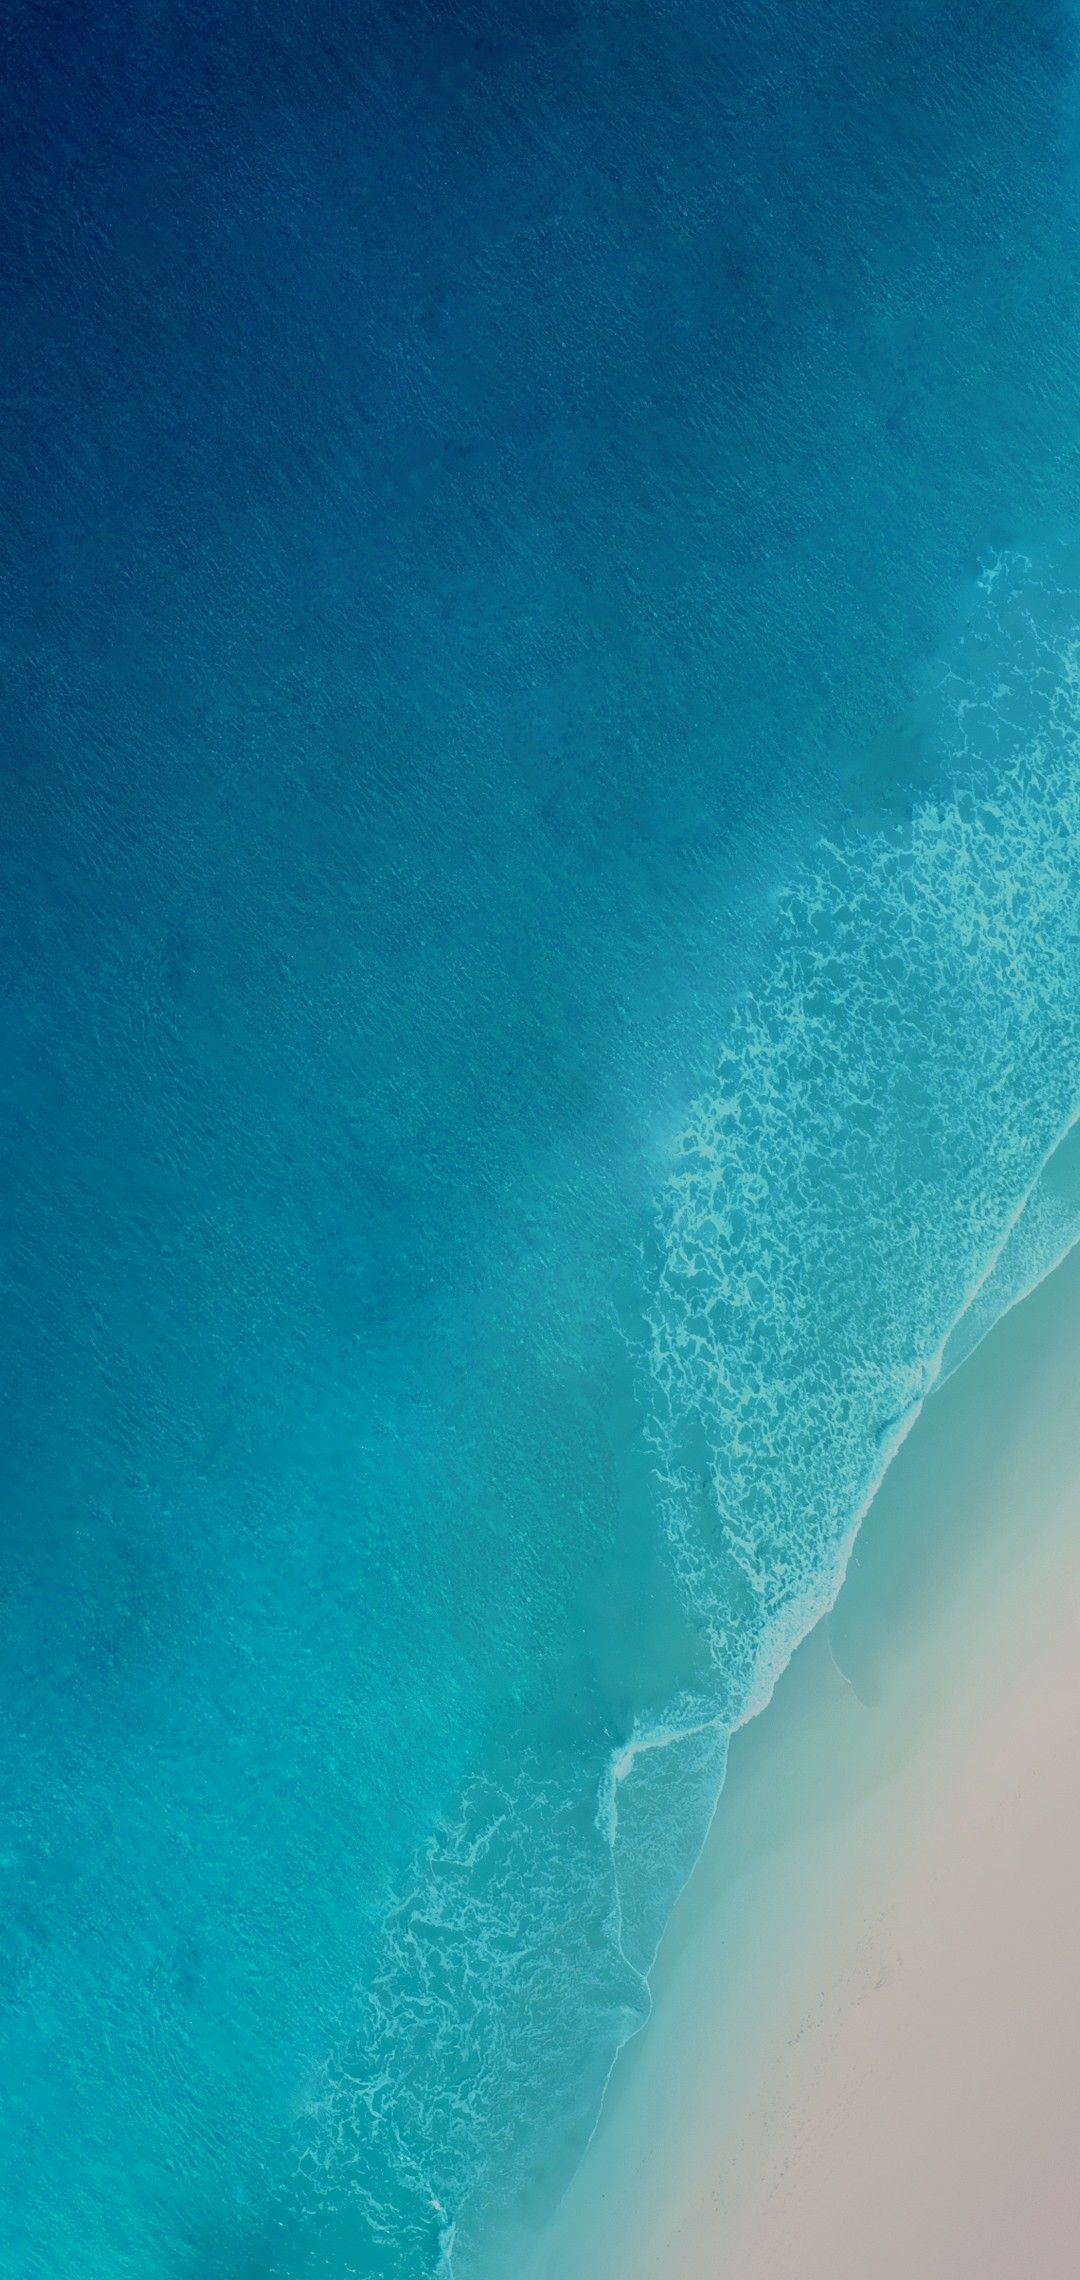 IOS 12 IPhone X Aqua Blue Water Ocean Apple Wallpaper Iphone 8 Clean Beauty Colour Minimal